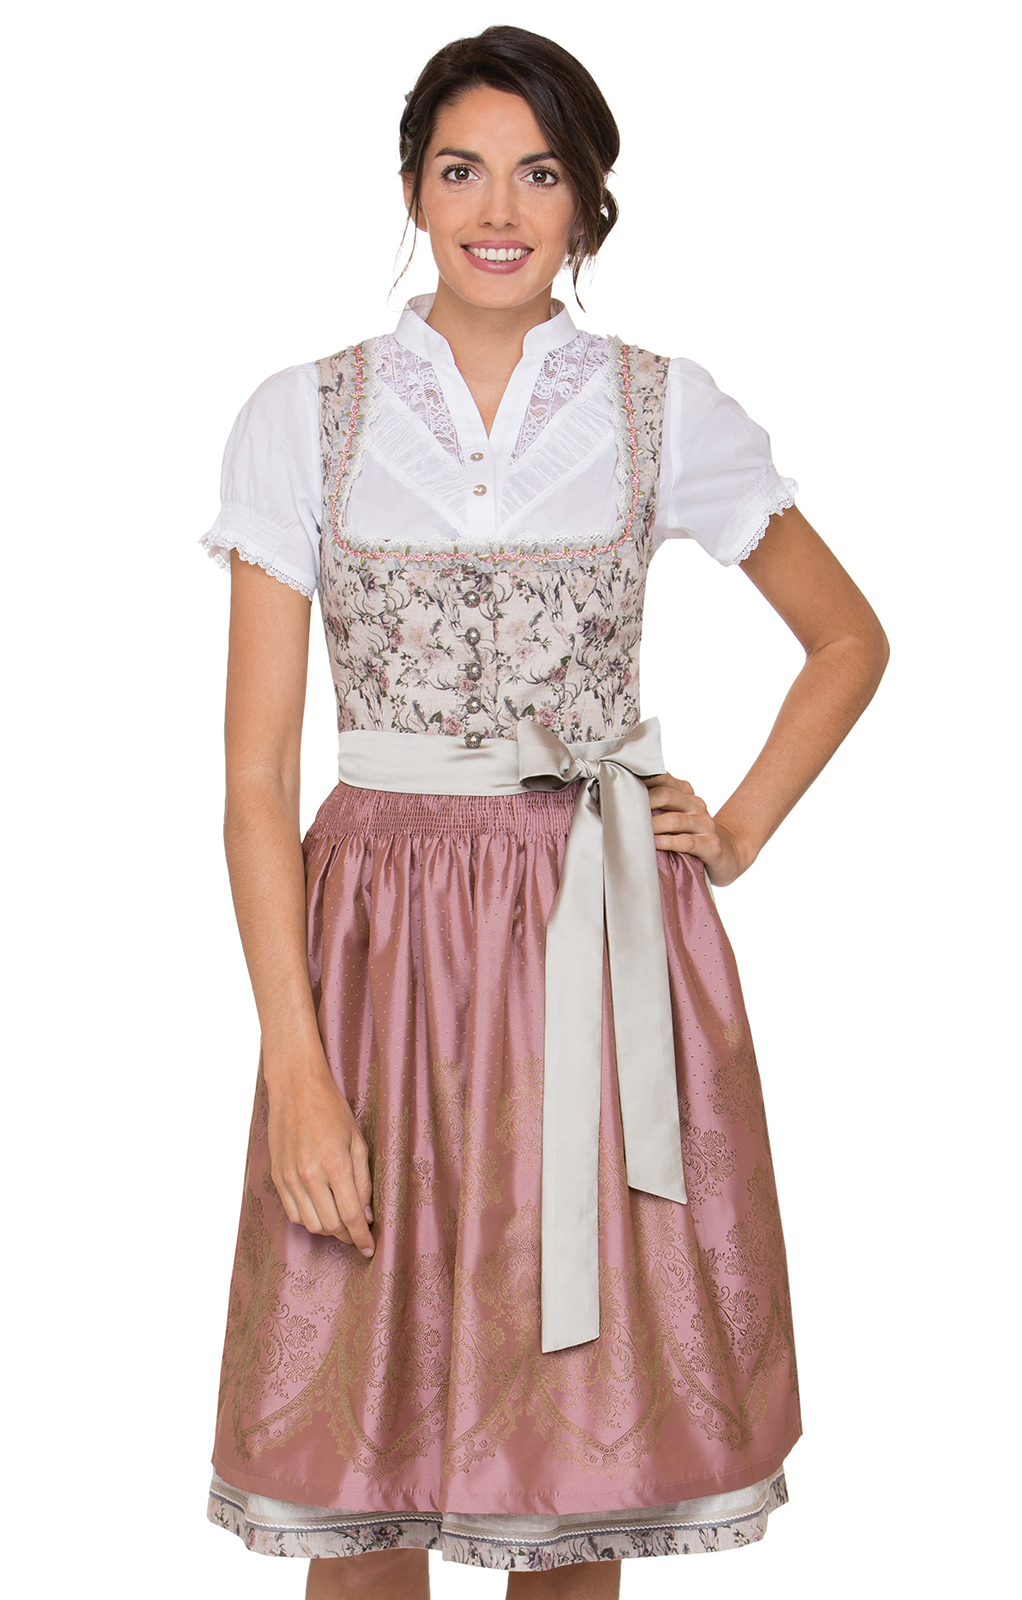 German Midi dirndl 2pcs. Campania white pink 65 cm von Stockerpoint